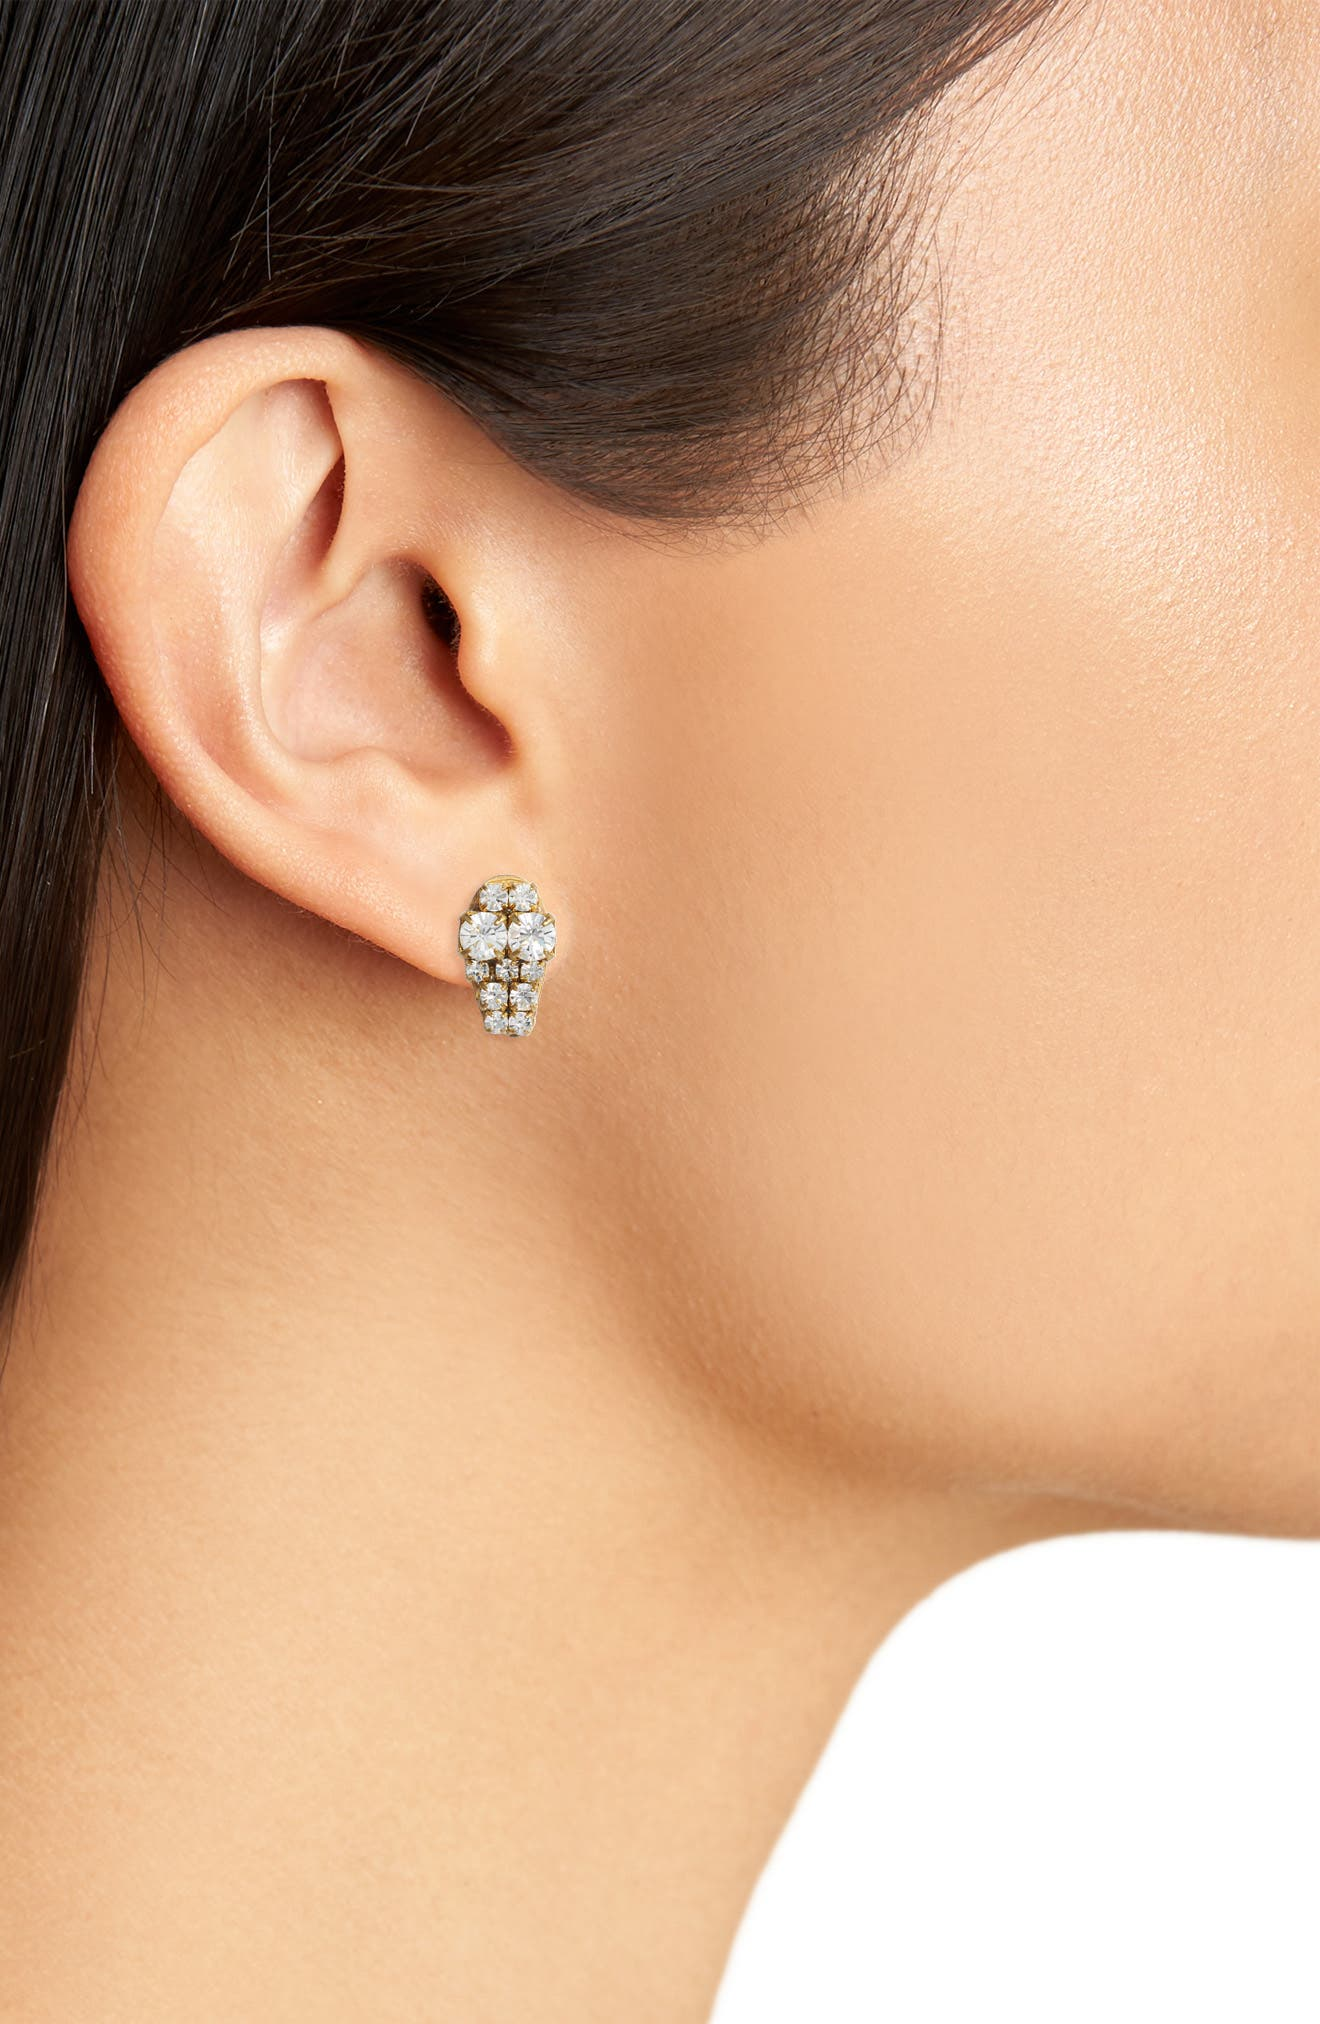 Graduated Crystal Stud Earrings,                             Alternate thumbnail 2, color,                             710